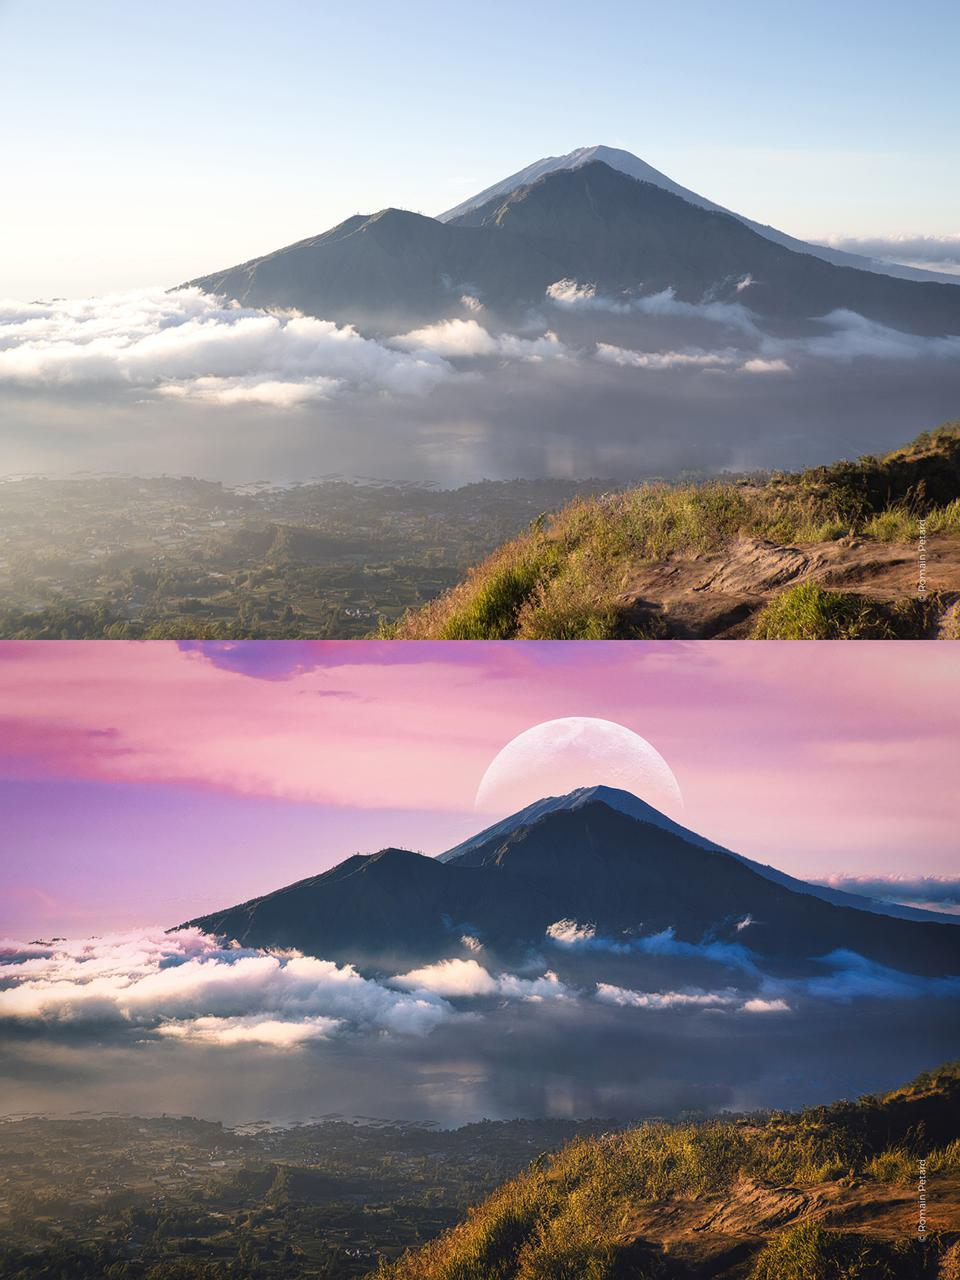 Before and after image of a mountain with a replacement sky and a moon.